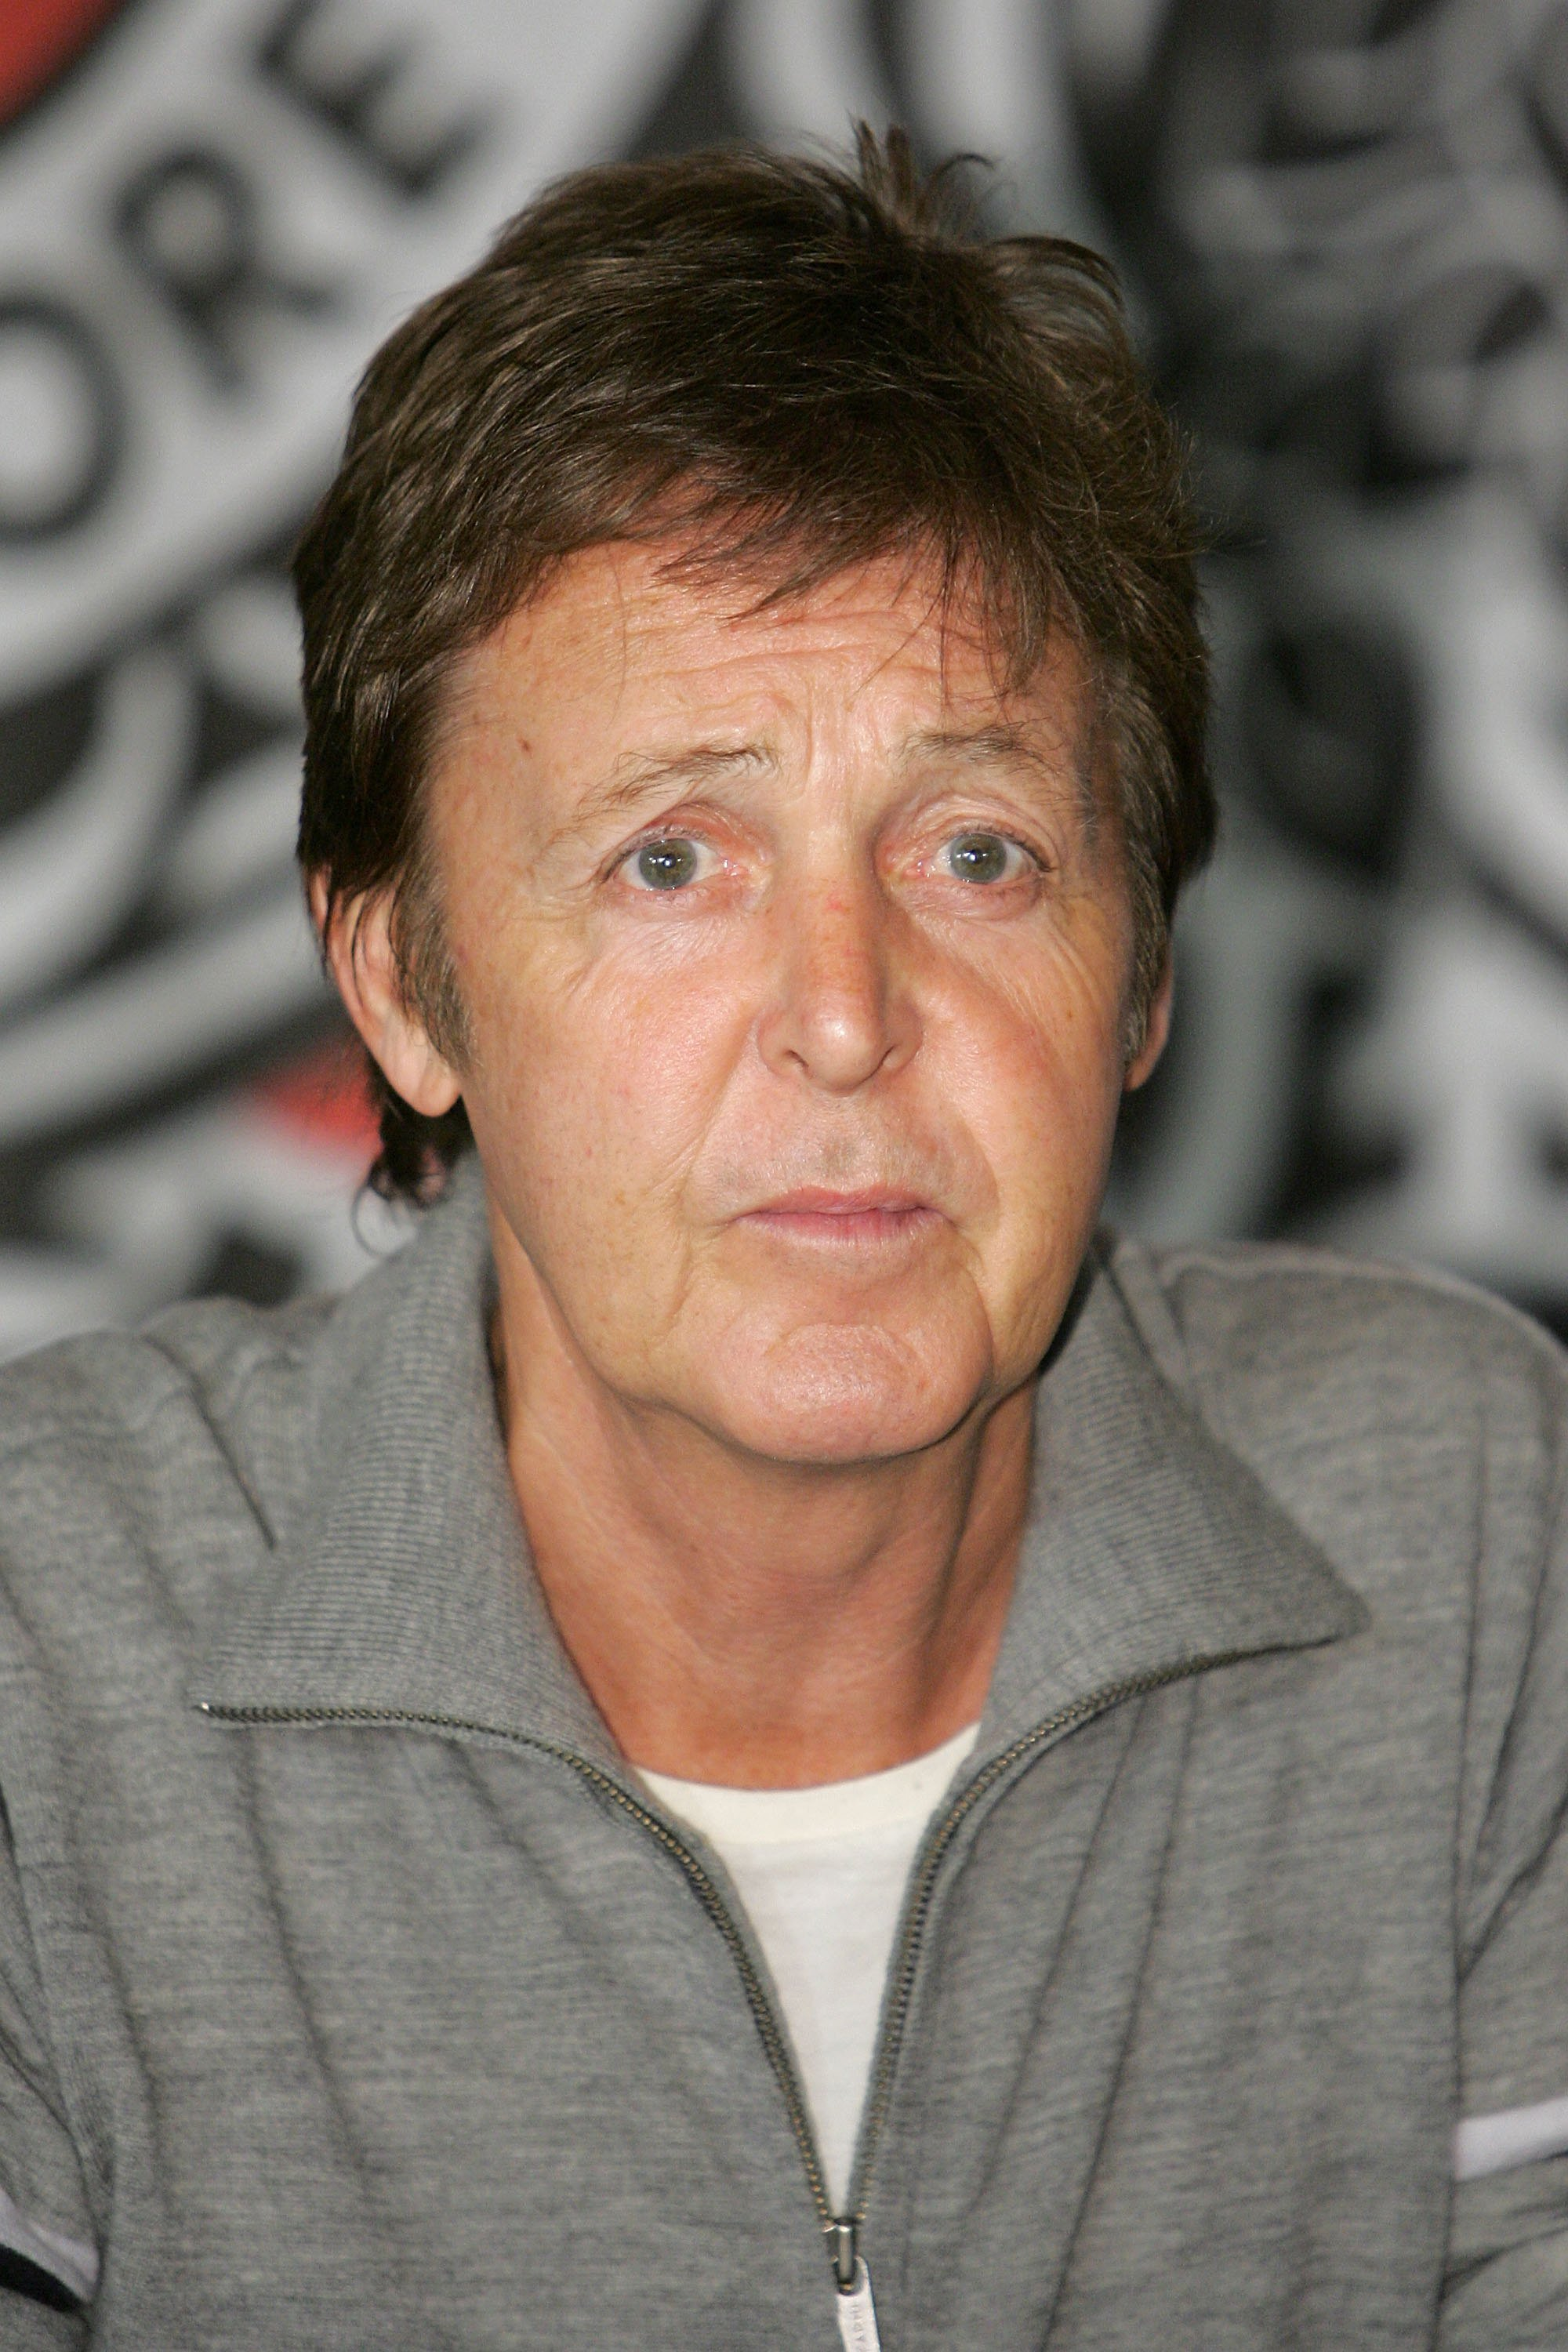 Paul McCartney attends a in store autograph signing at Virgin Megastore Times Square on November 13, 2006. | Photo: Getty Images